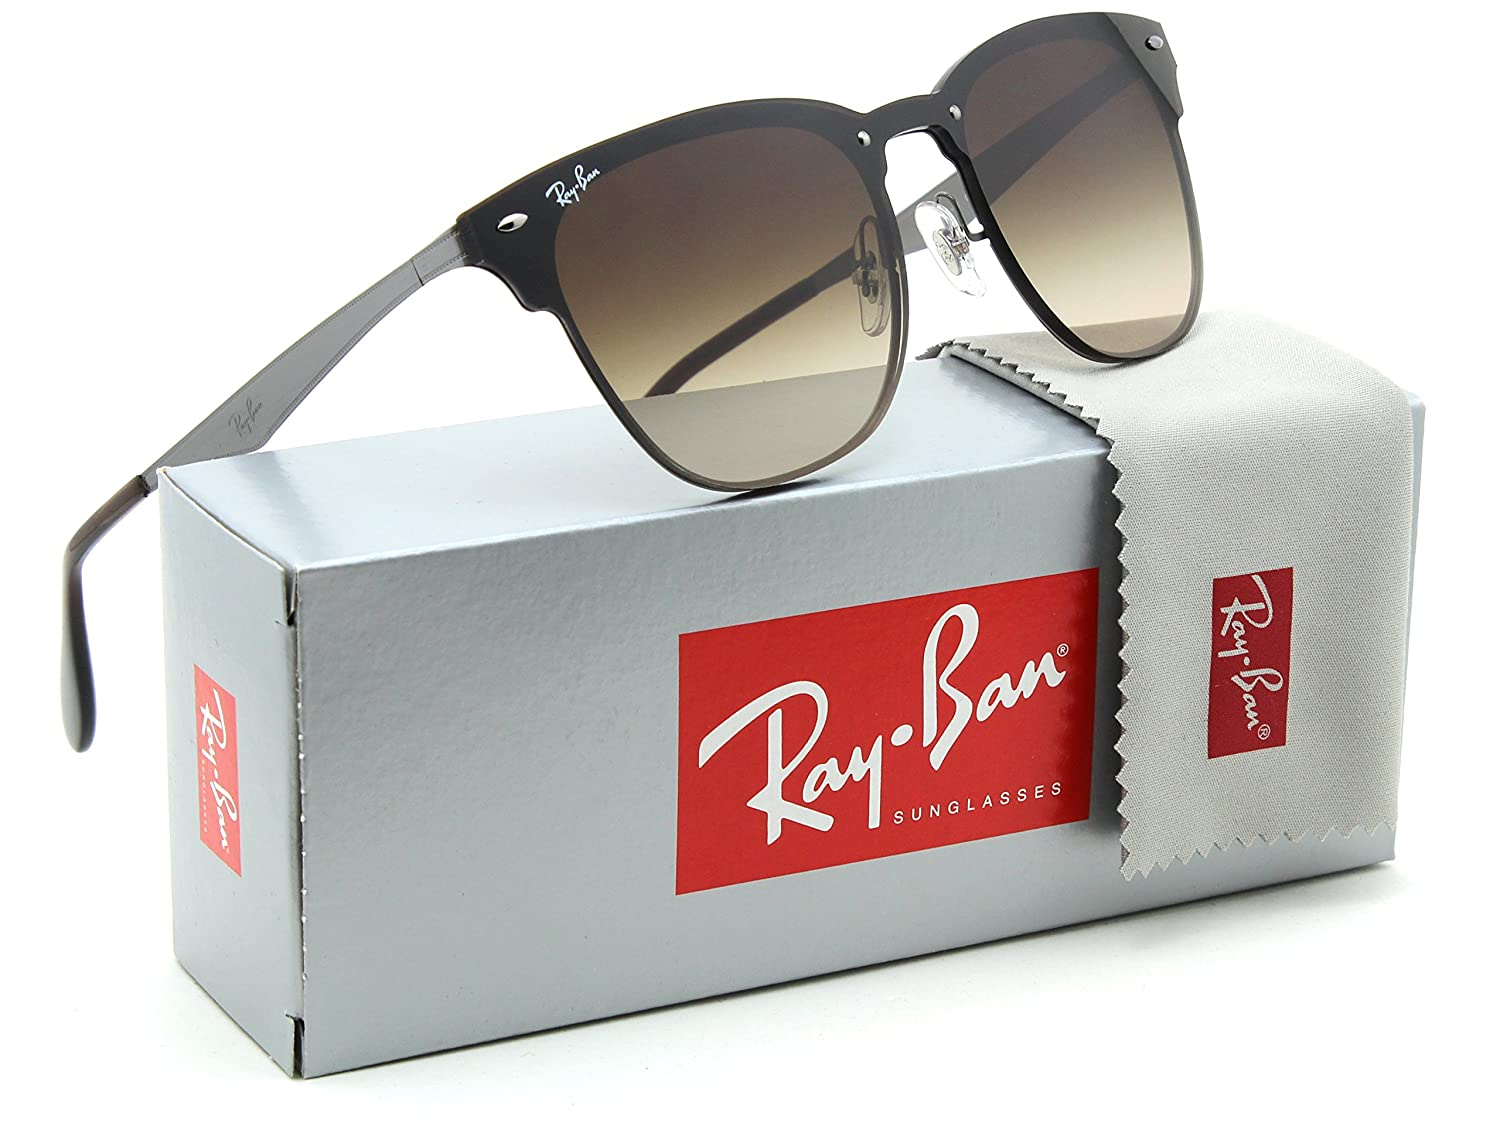 46e6269b83 Amazon.com  Ray-Ban RB3576N Blaze Clubmaster Unisex Gradient Sunglasses  041 13 - 41mm  Clothing